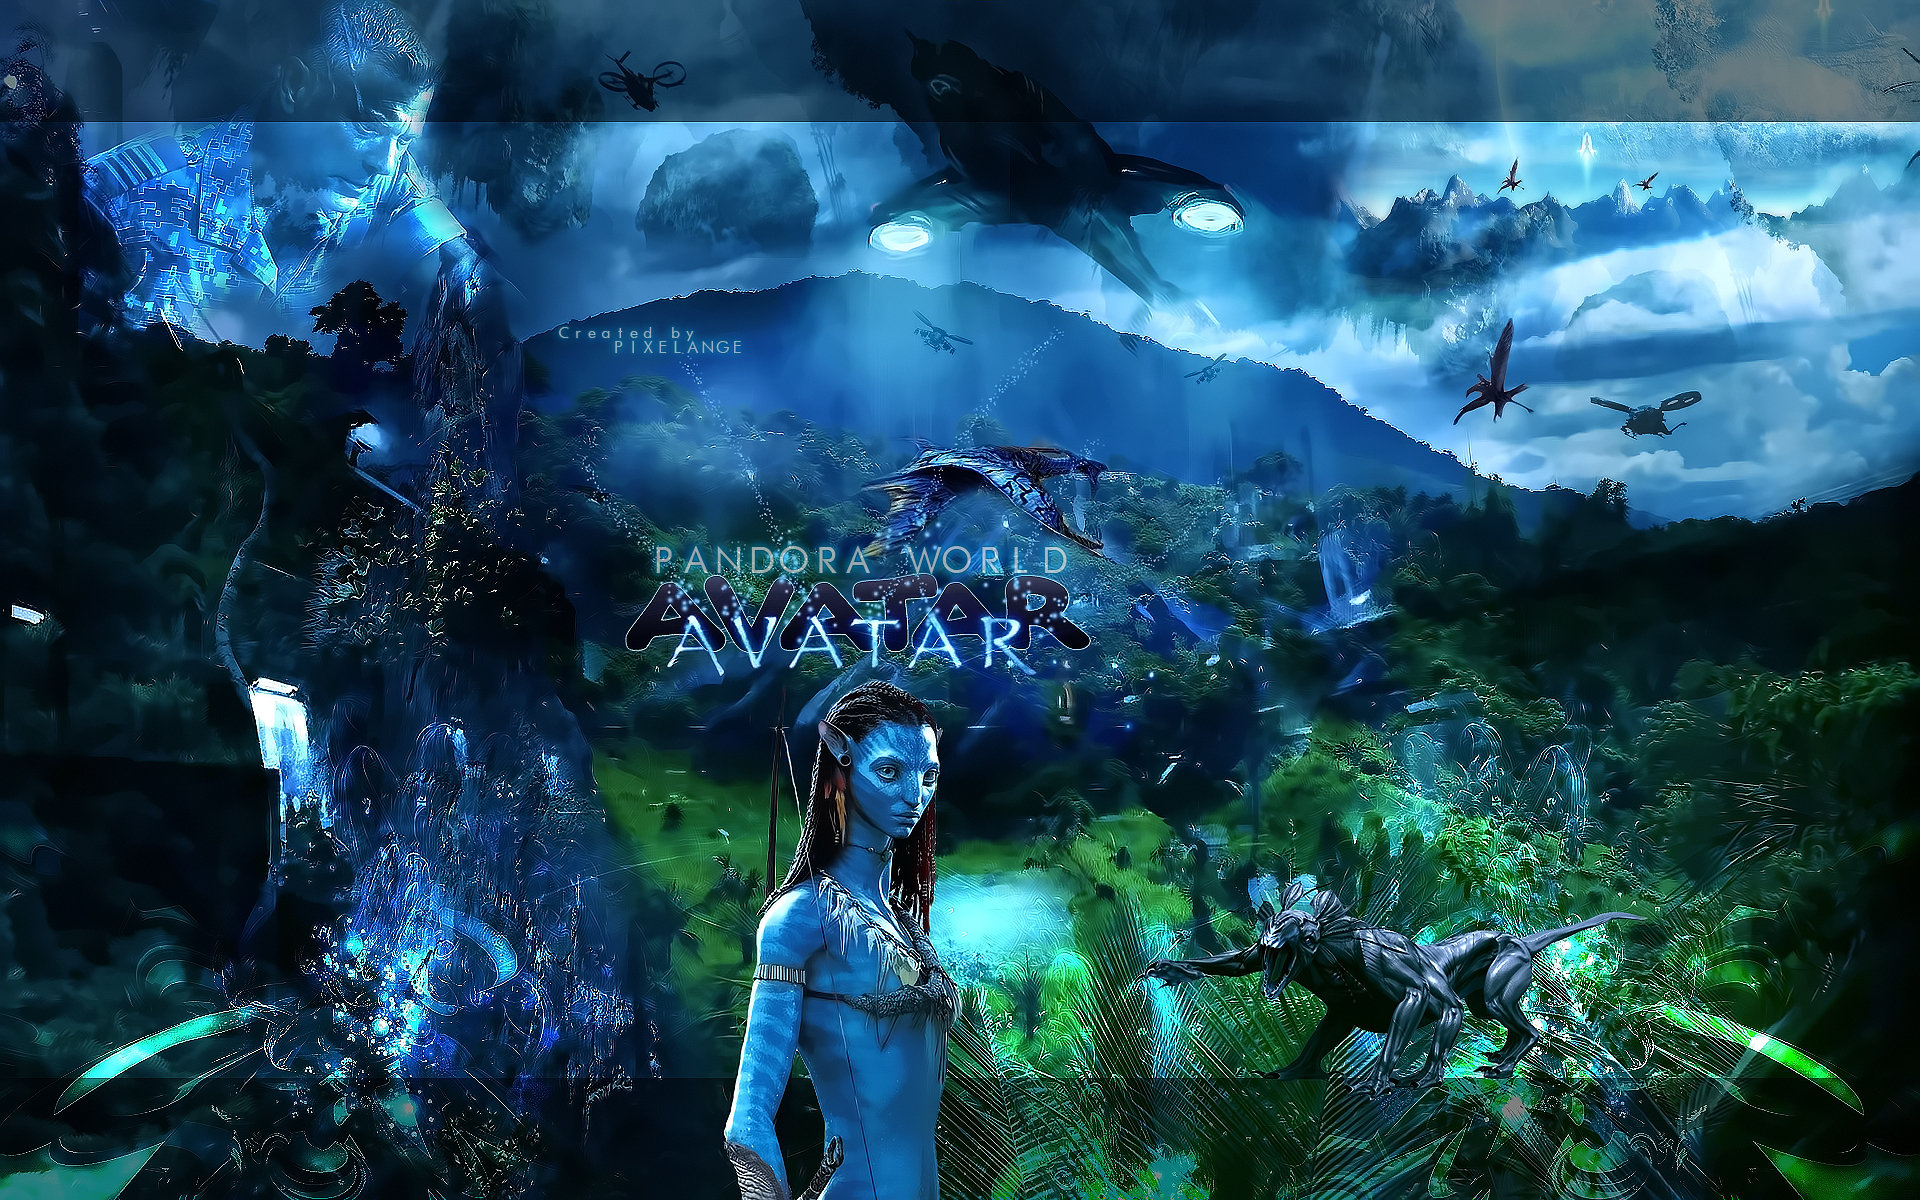 James cameron s avatar wallpaper